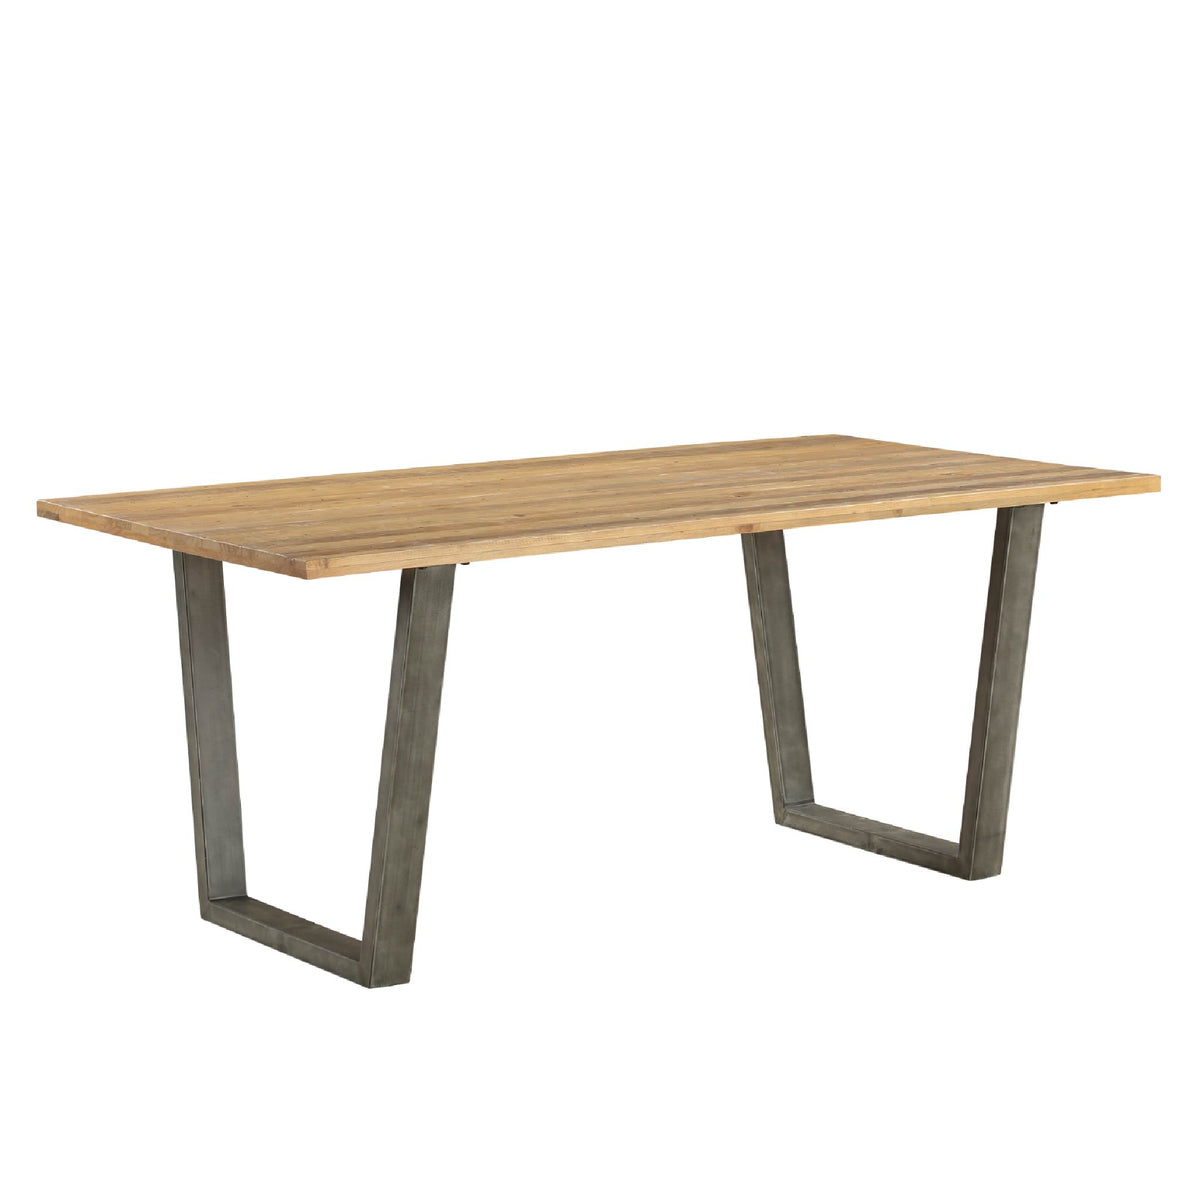 Urban Elegance Reclaimed Wood Dining Table on white background